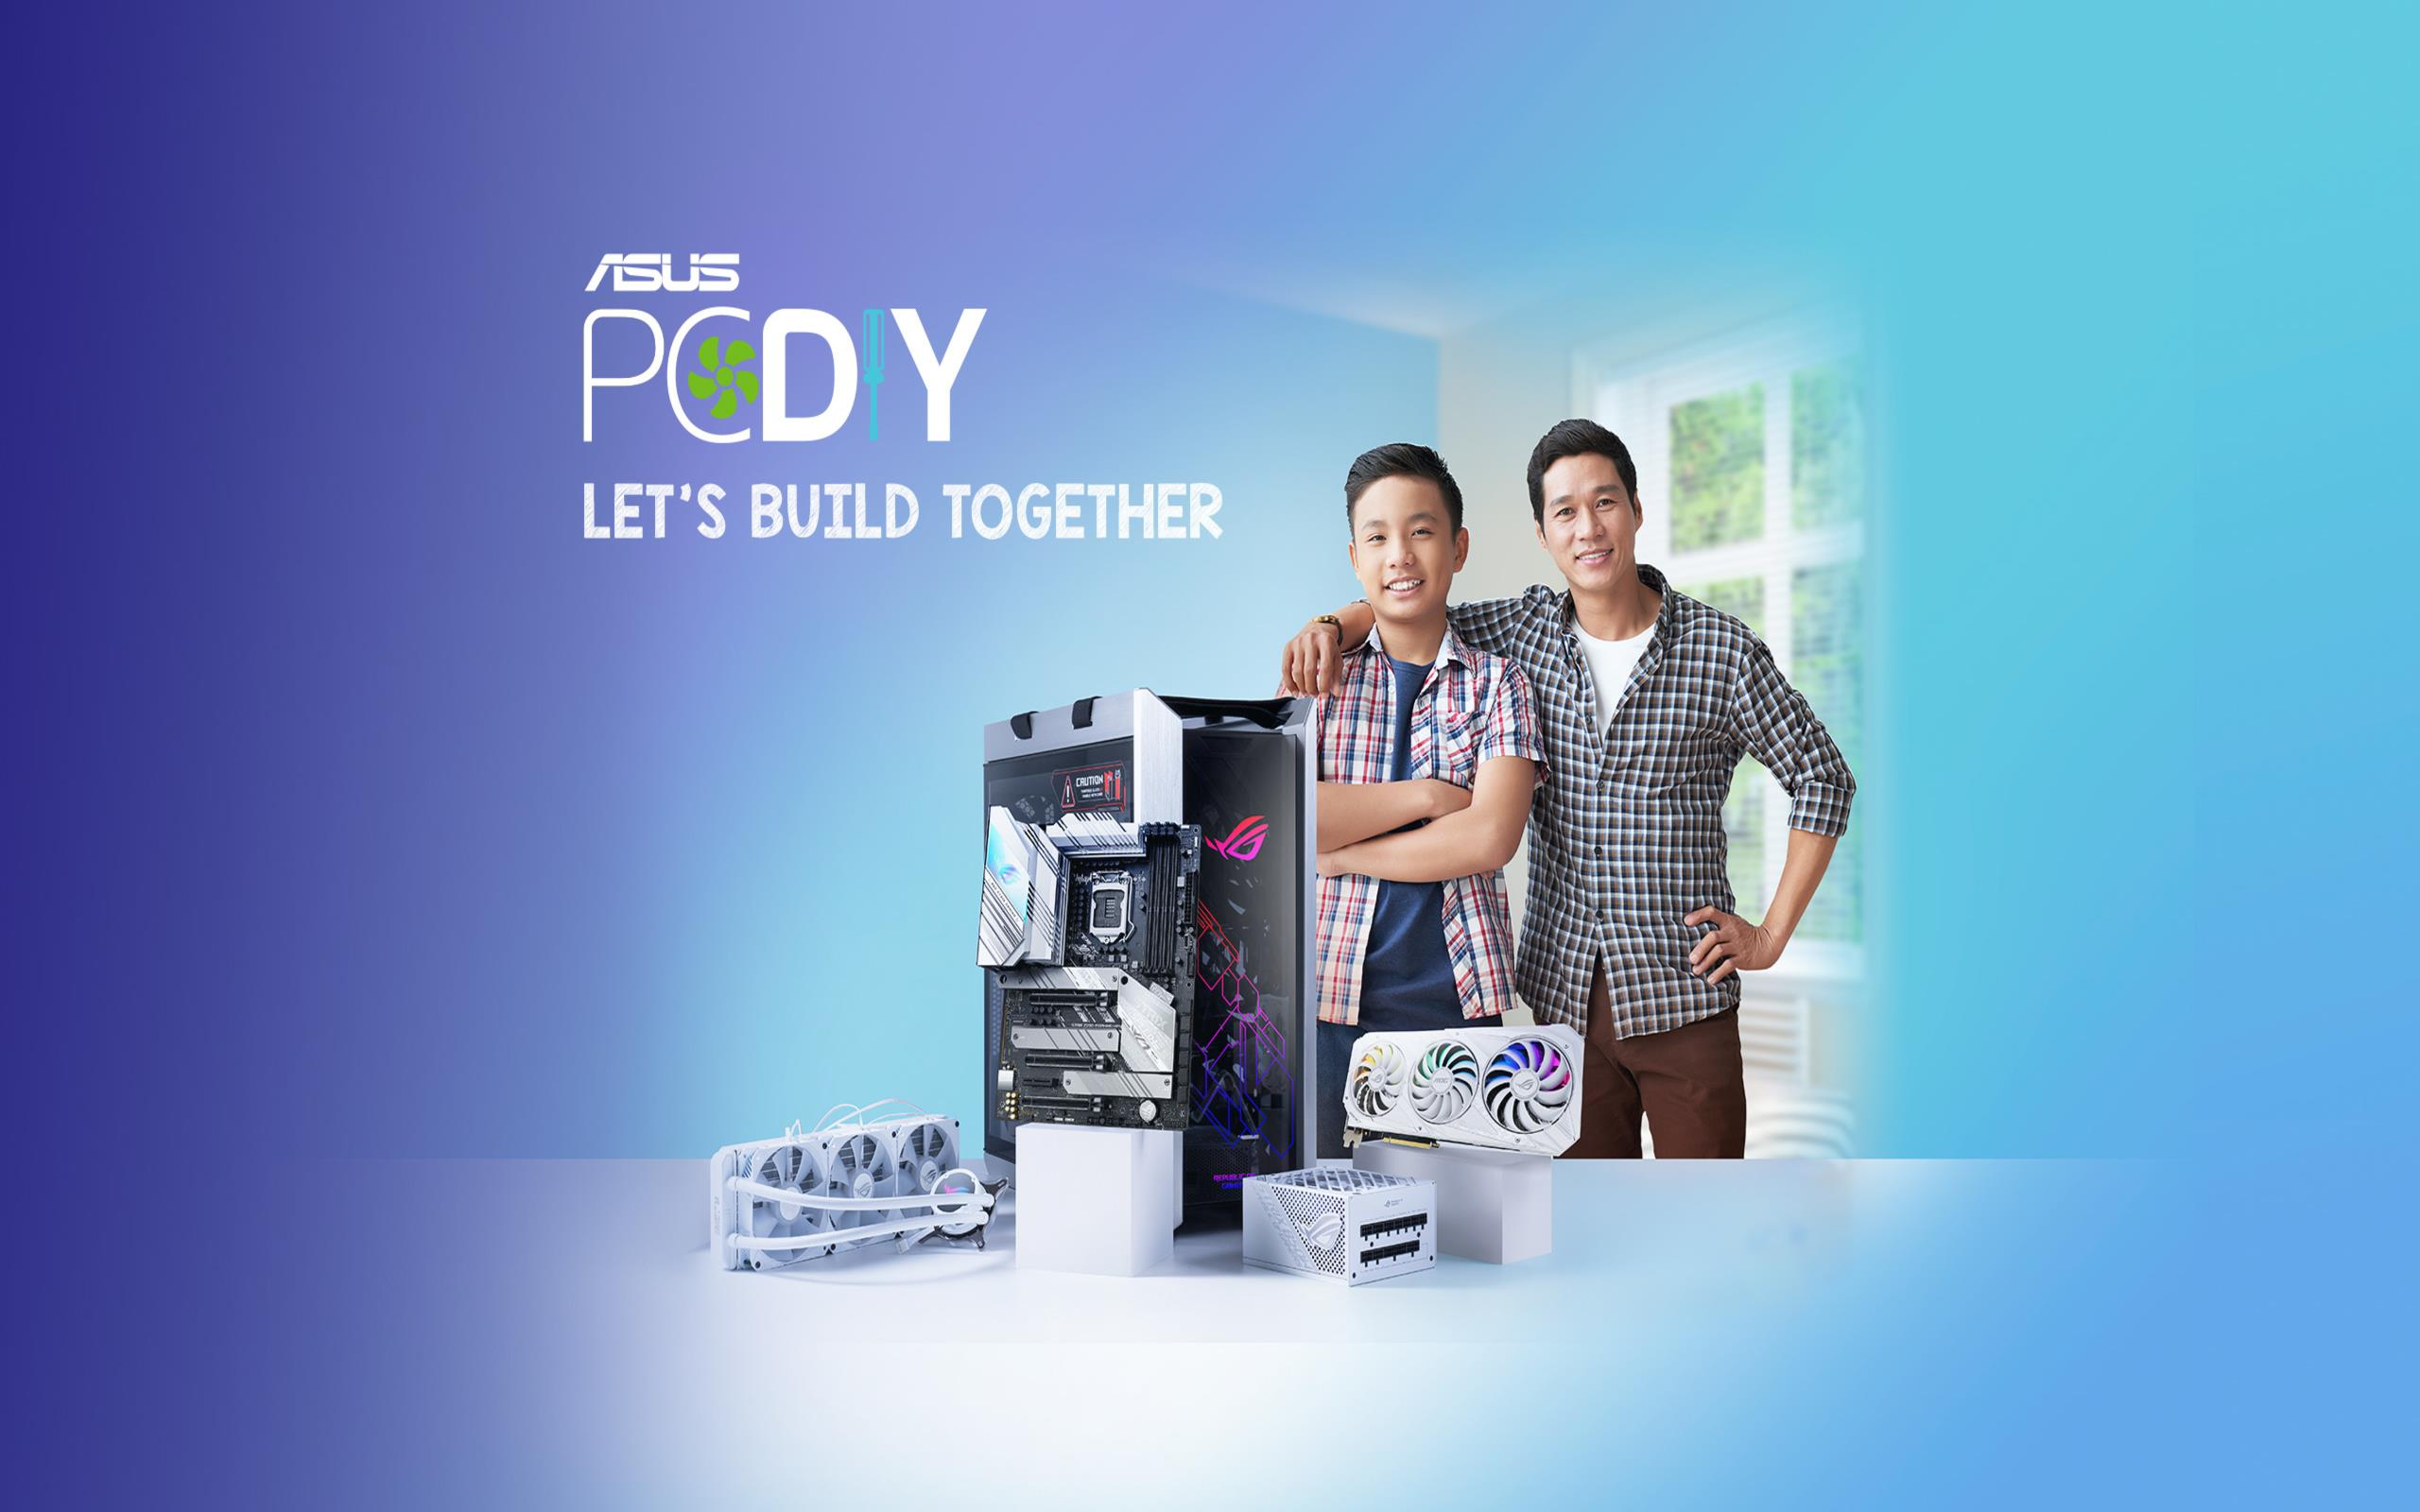 Build A PC with ASUS!